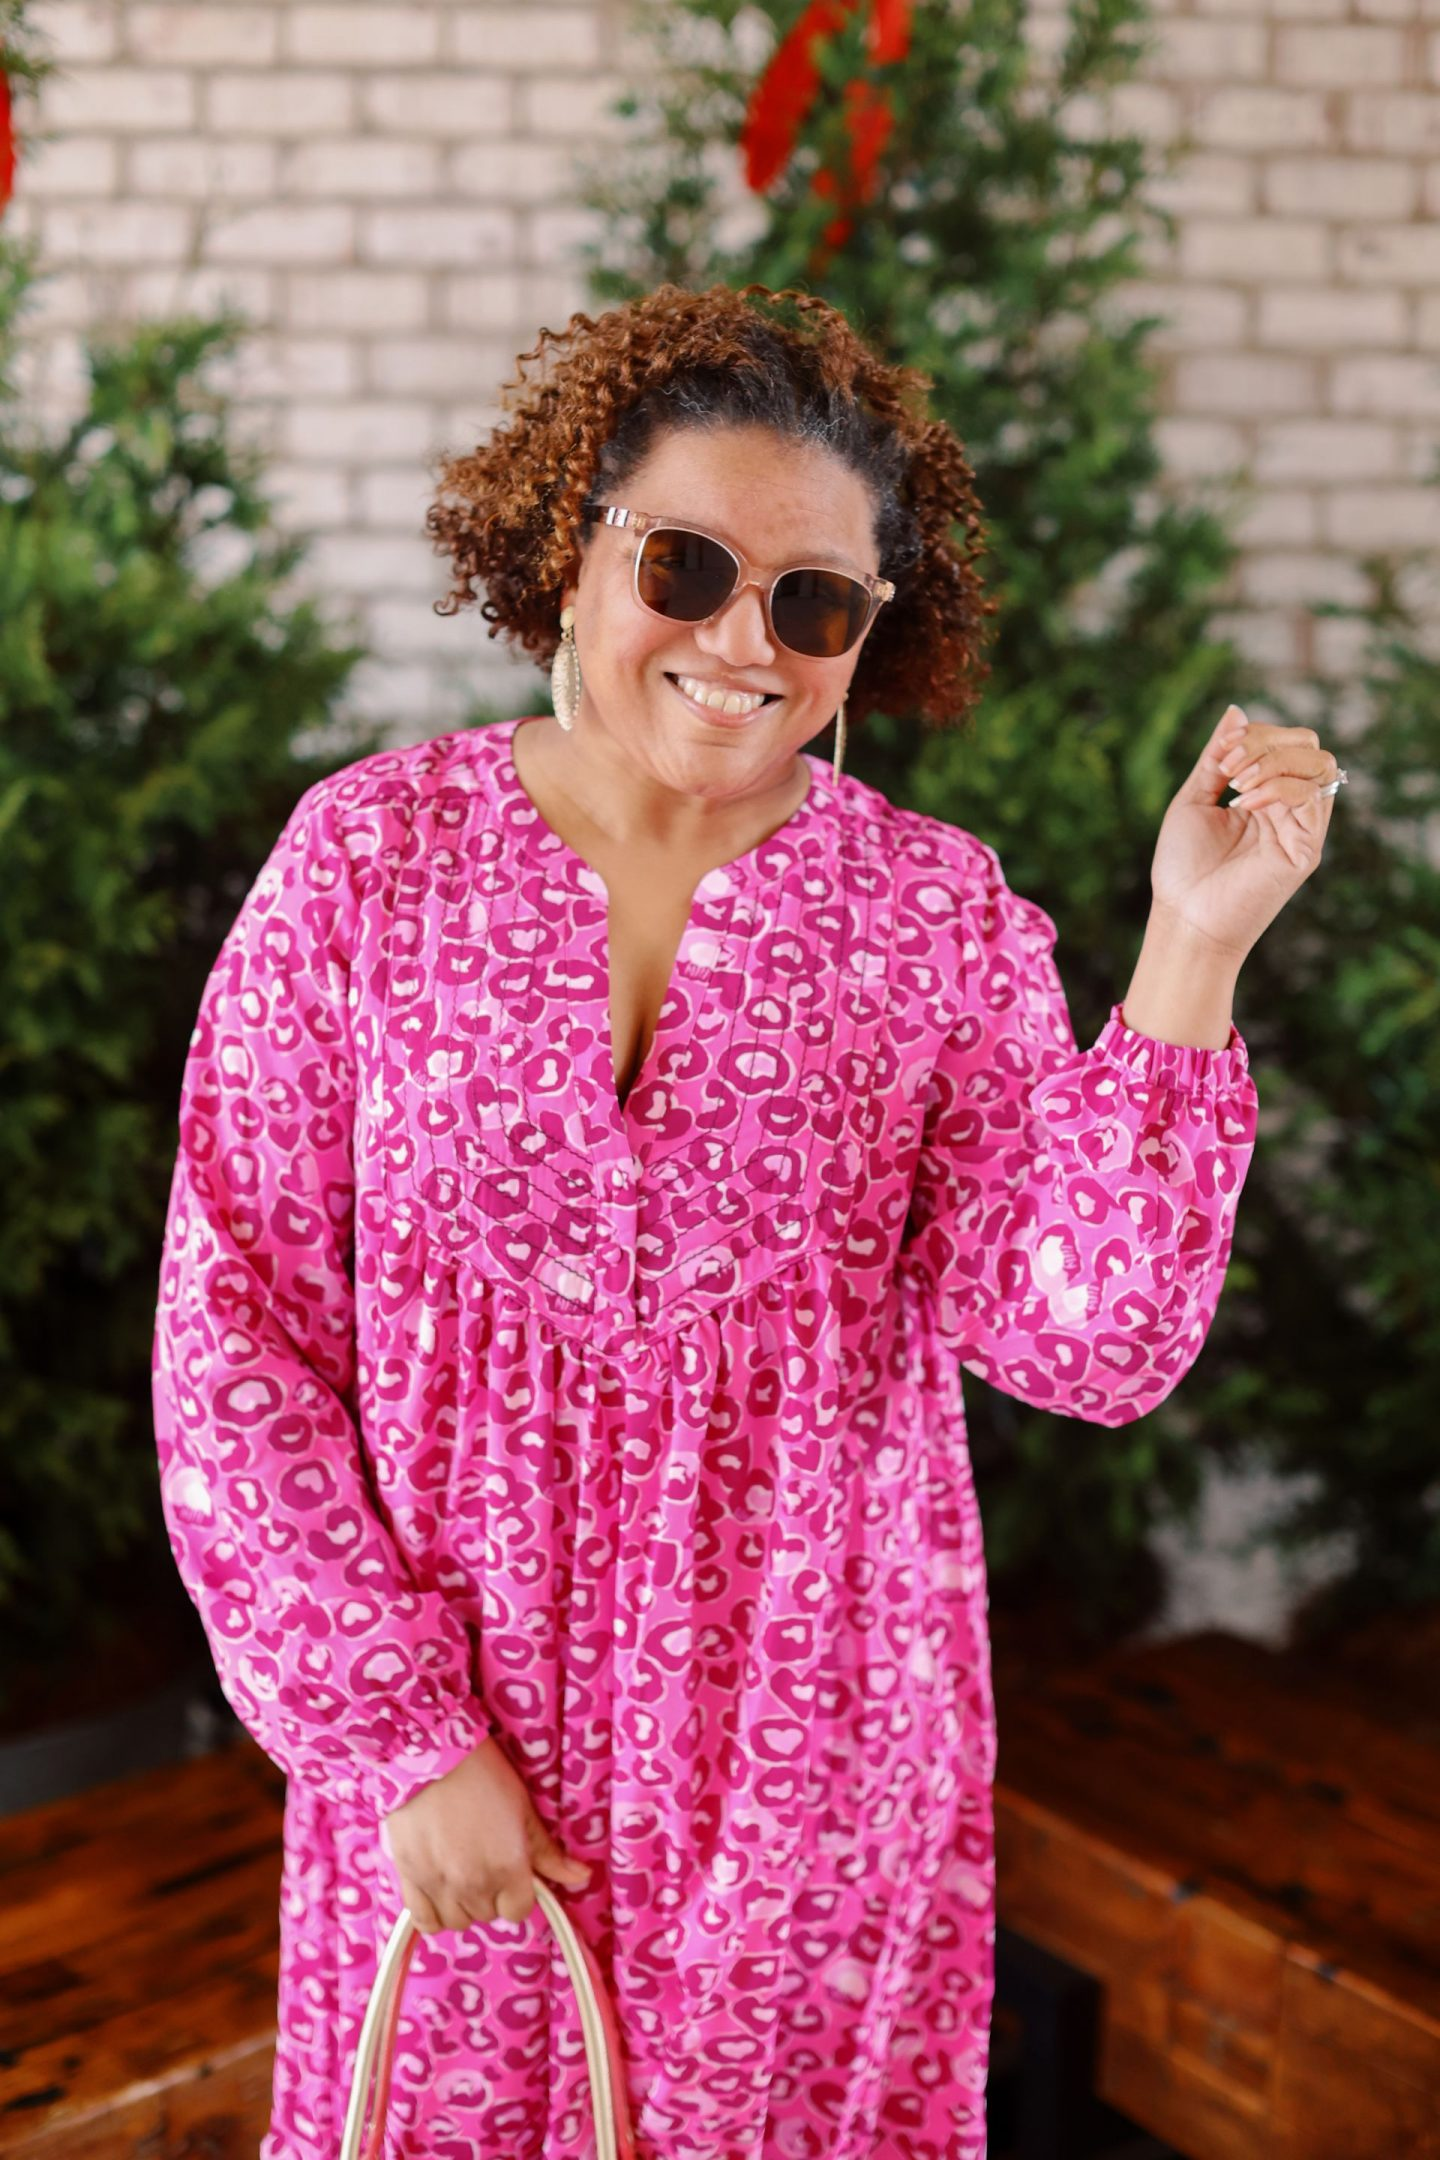 Lilly Pulitzer New Arrivals by popular Kentucky fashion blog, Really Rynetta: image of a woman wearing a pink leopard print Lilly Pulitzer dress.